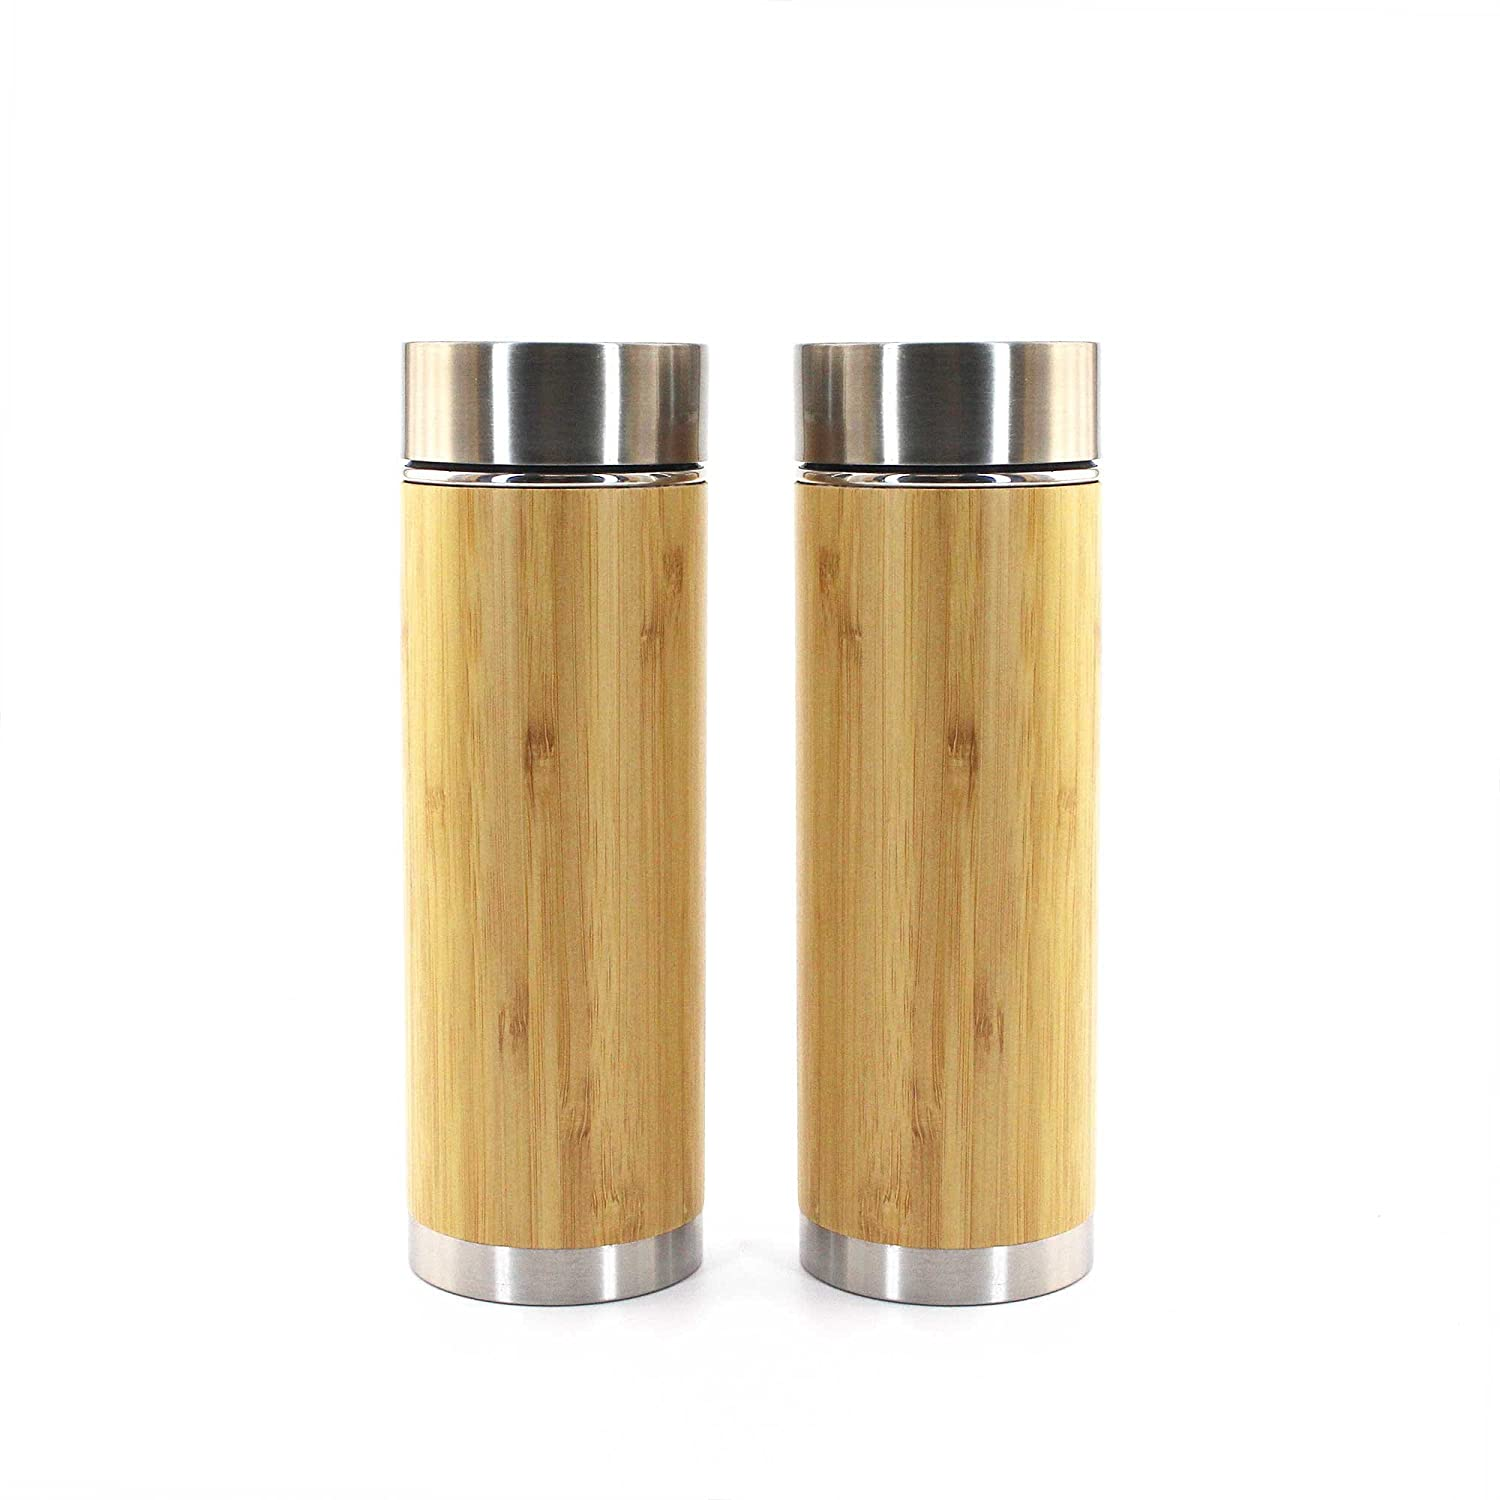 Bamboo Insulated Thermos with Removable Ranking TOP8 Tea Infuser Max 86% OFF 10oz 2 - P